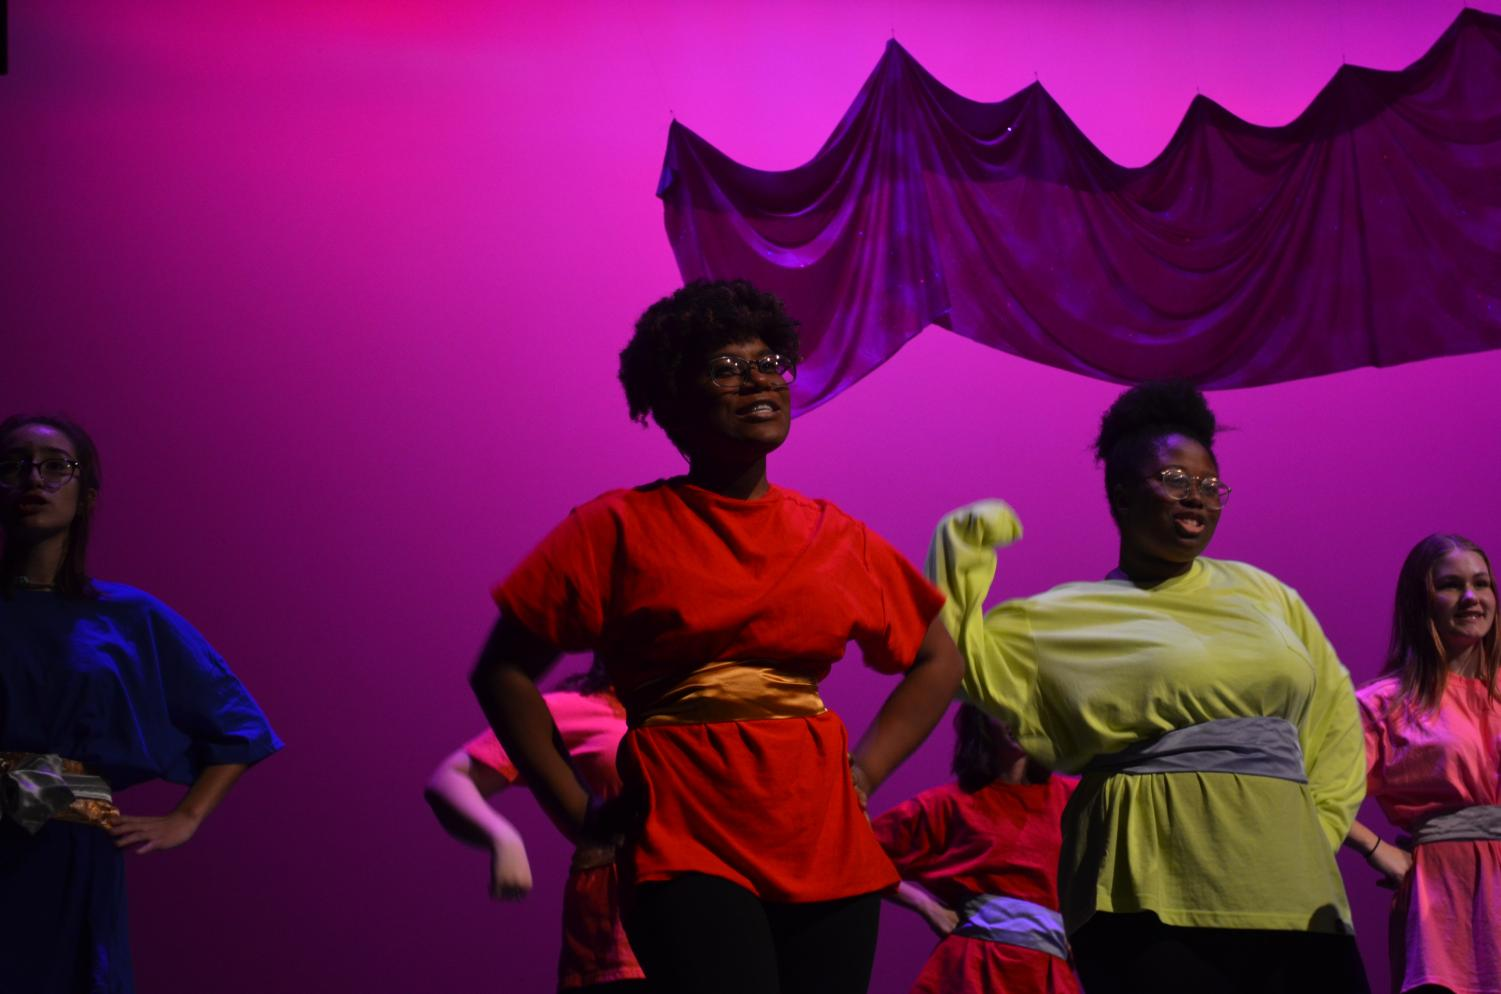 """MEMORIES: In last semester's Cabaret, Foster stands center singing """"My Stongest Suit"""" from Aida the Musical. """"[Cabaret] was really great because that was when I first got to meet so many people... all the different choirs come together to put on a big show,"""" Foster said. Photo by Marley Angle."""